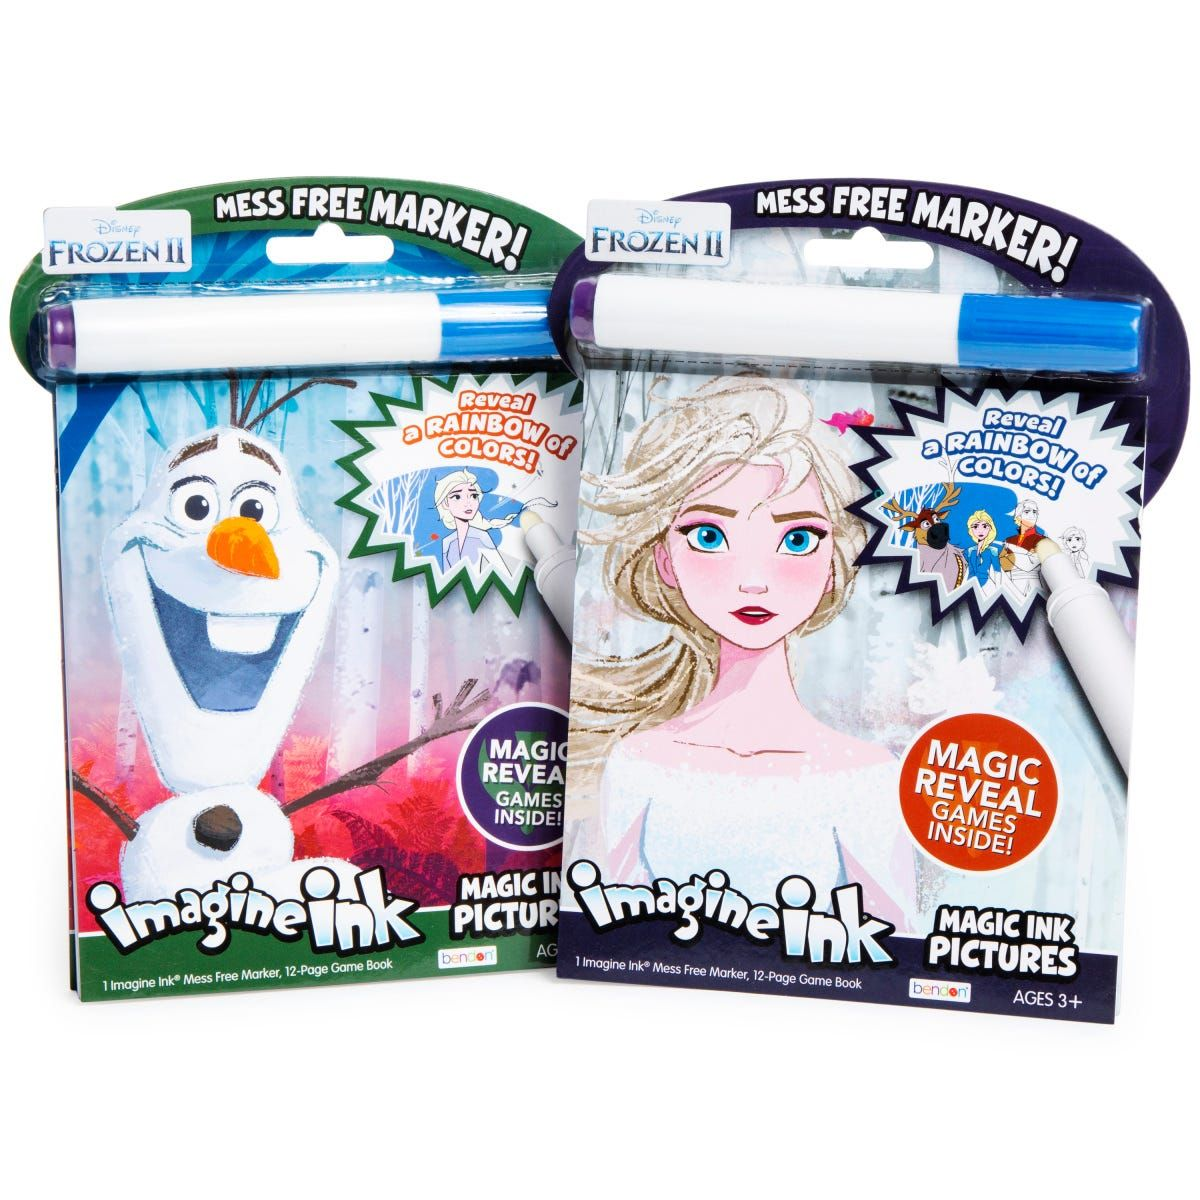 Disney Frozen 2 Imagine Ink Magic Ink Pictures Coloring Book Five Below Disney Frozen 2 Disney Frozen Coloring Books